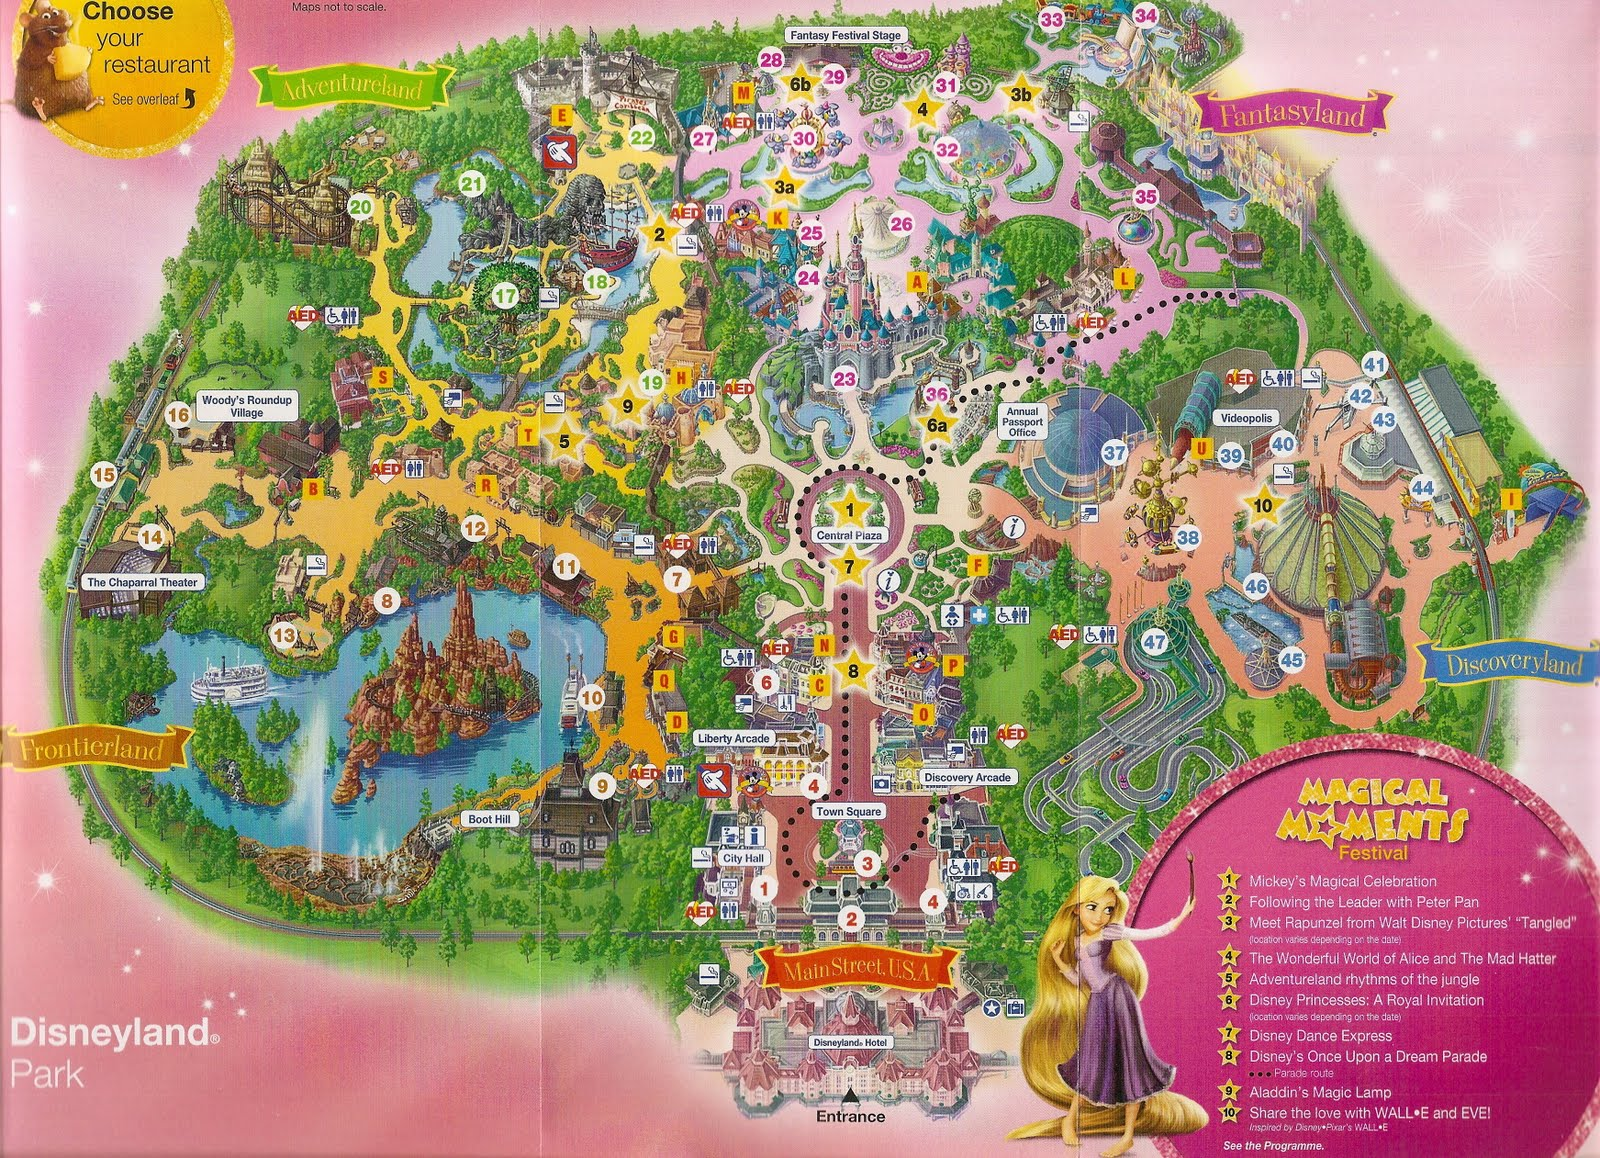 ... to disneyland resort paris with a look at the map of the disneyland